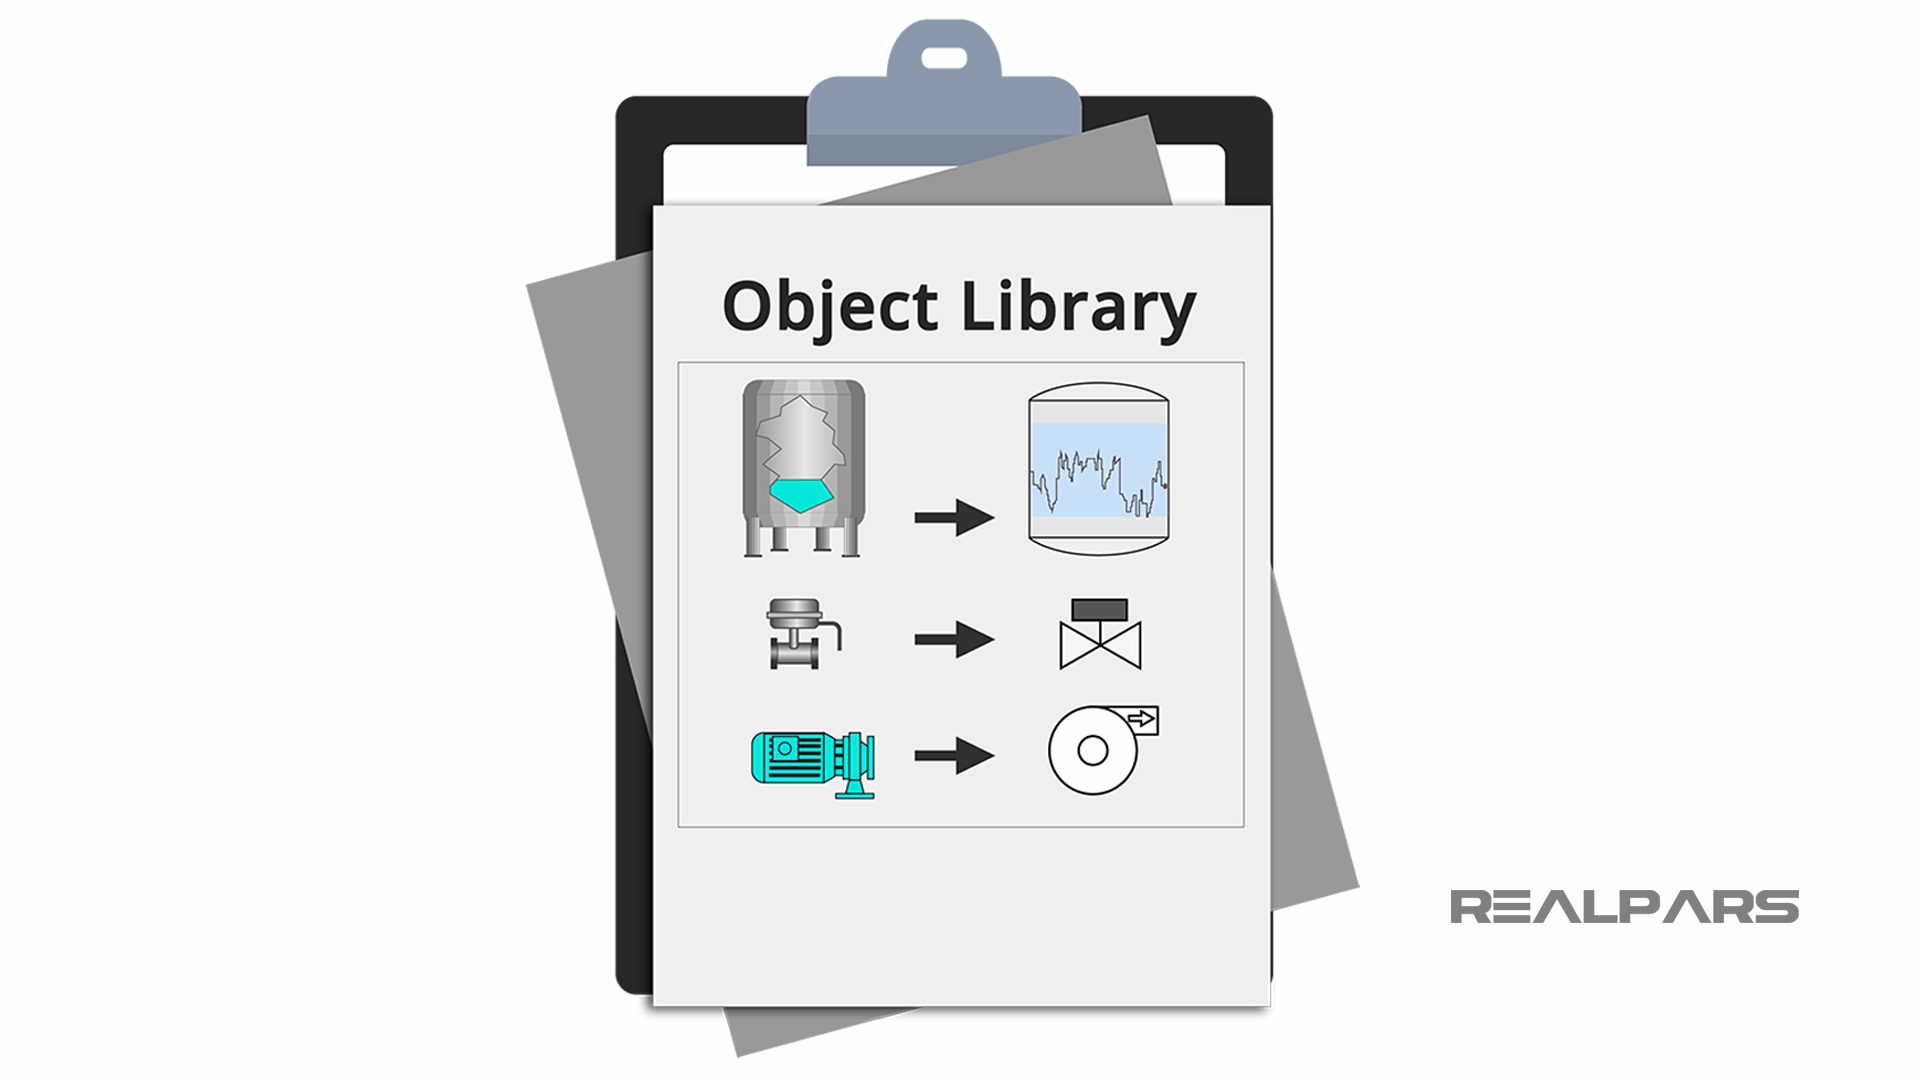 Guideline for Object Library in HMI